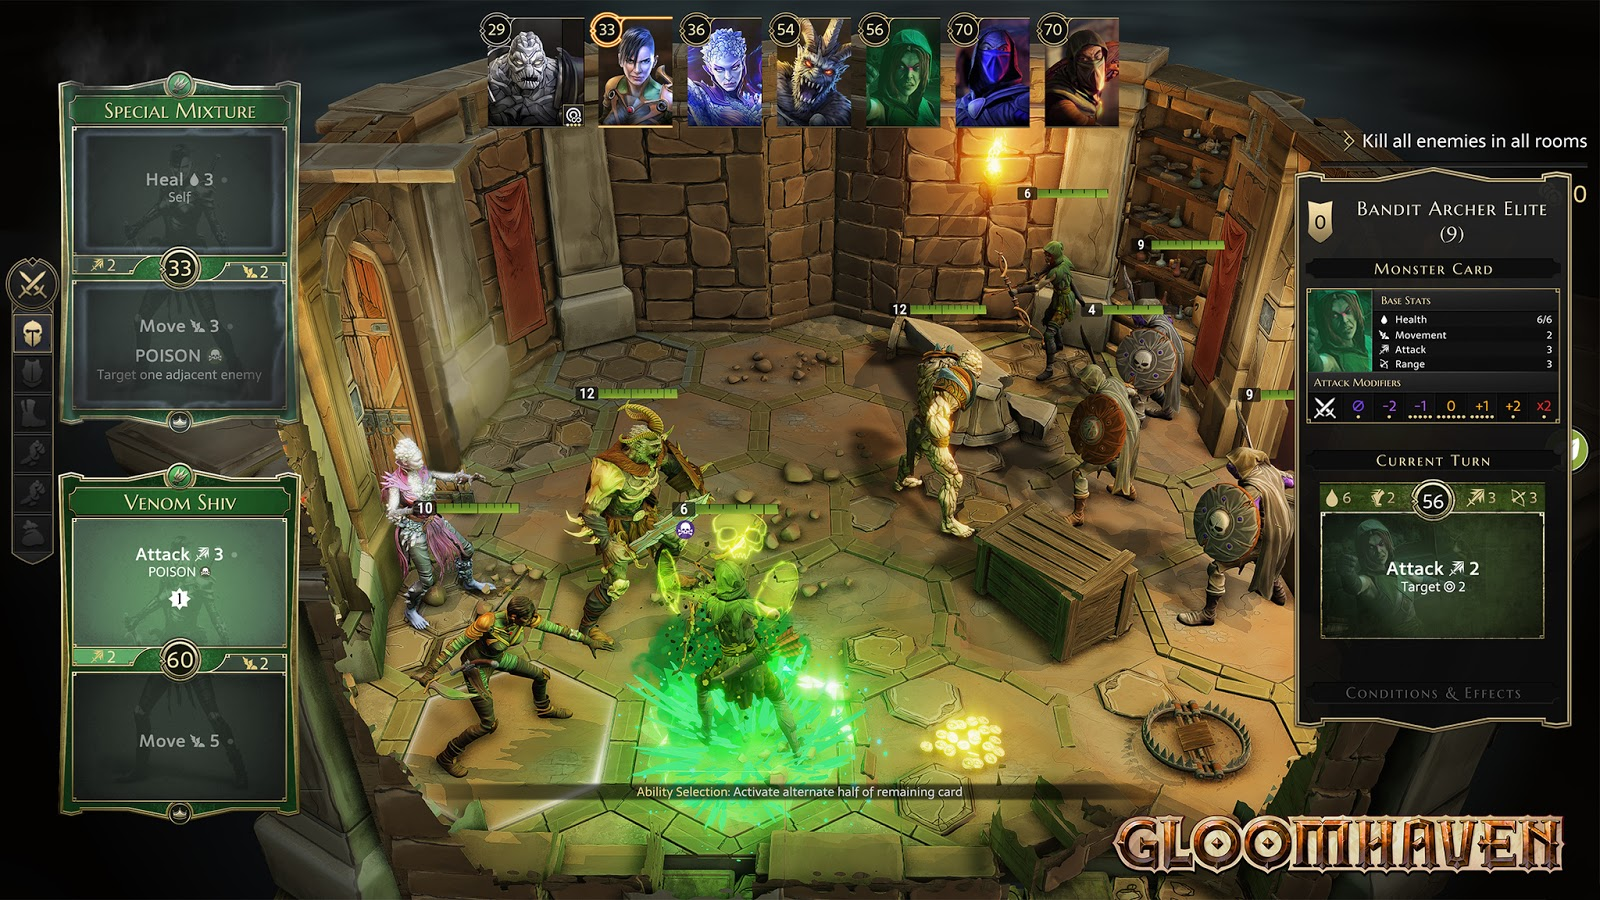 Chalgyr's Game Room: Gloomhaven Releases in Early Access